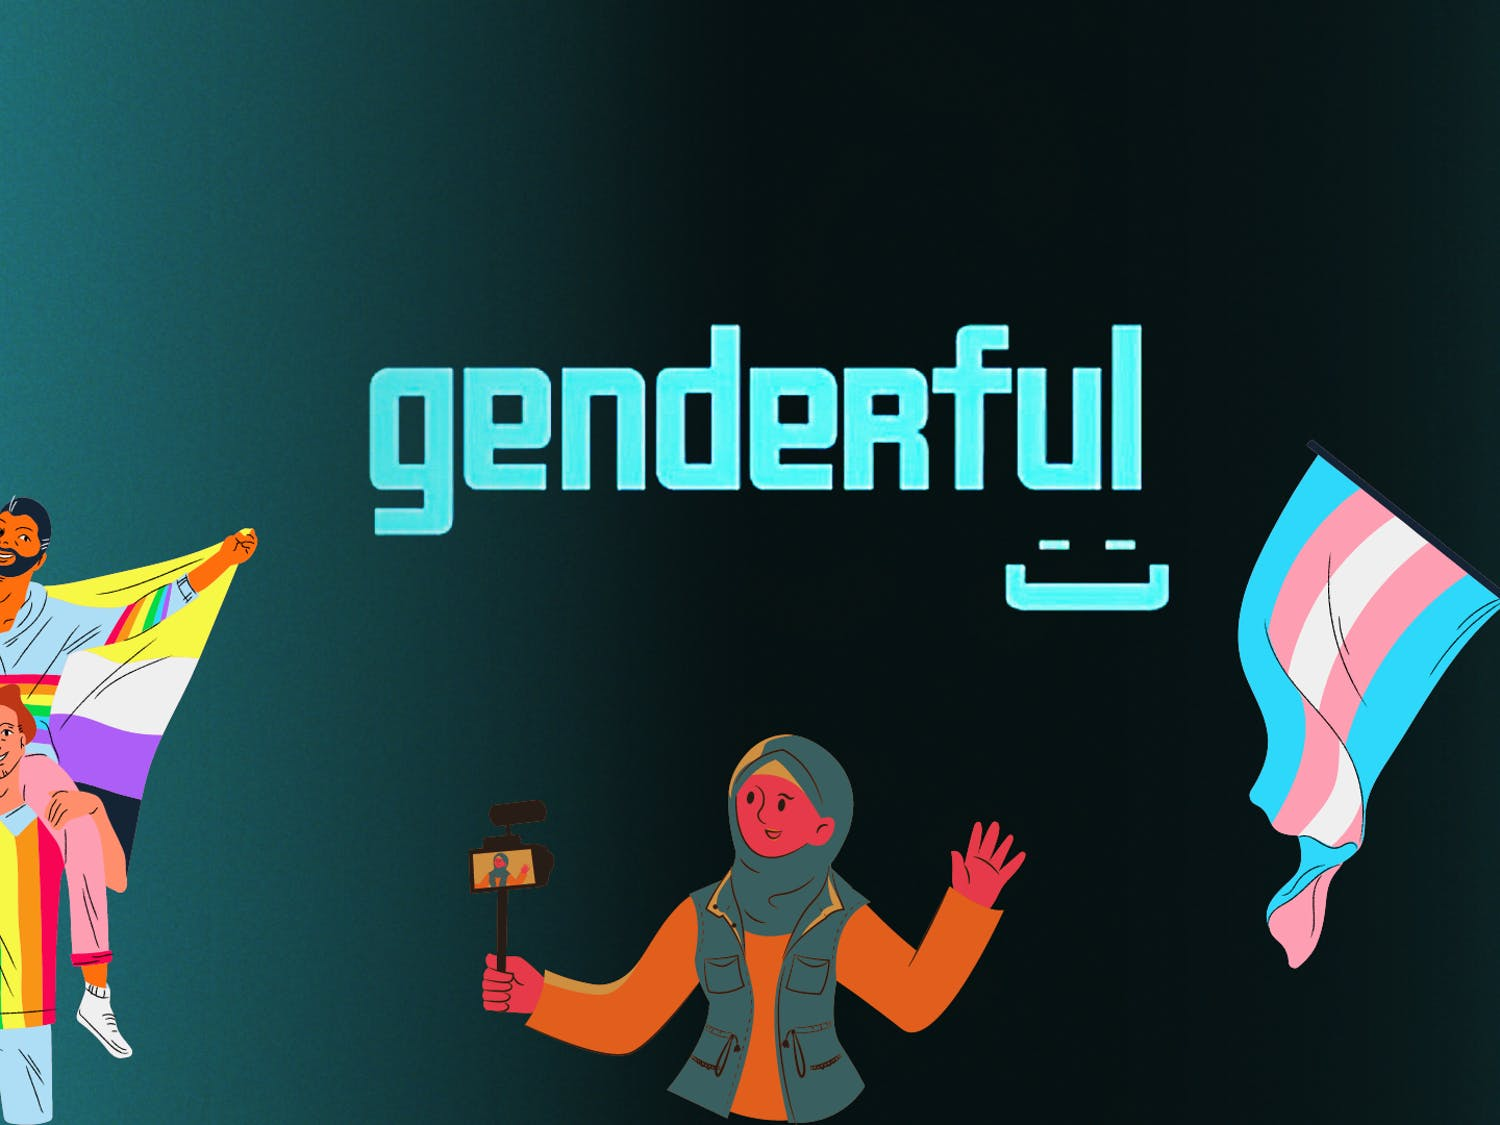 Genderful Toolkit, an online video series for gender-nonconforming individuals to share their personal stories about their identities, intends to increase representation for the gender-nonconforming community as well as educate the cis-gendered population on the lives of gender-nonconforming people.